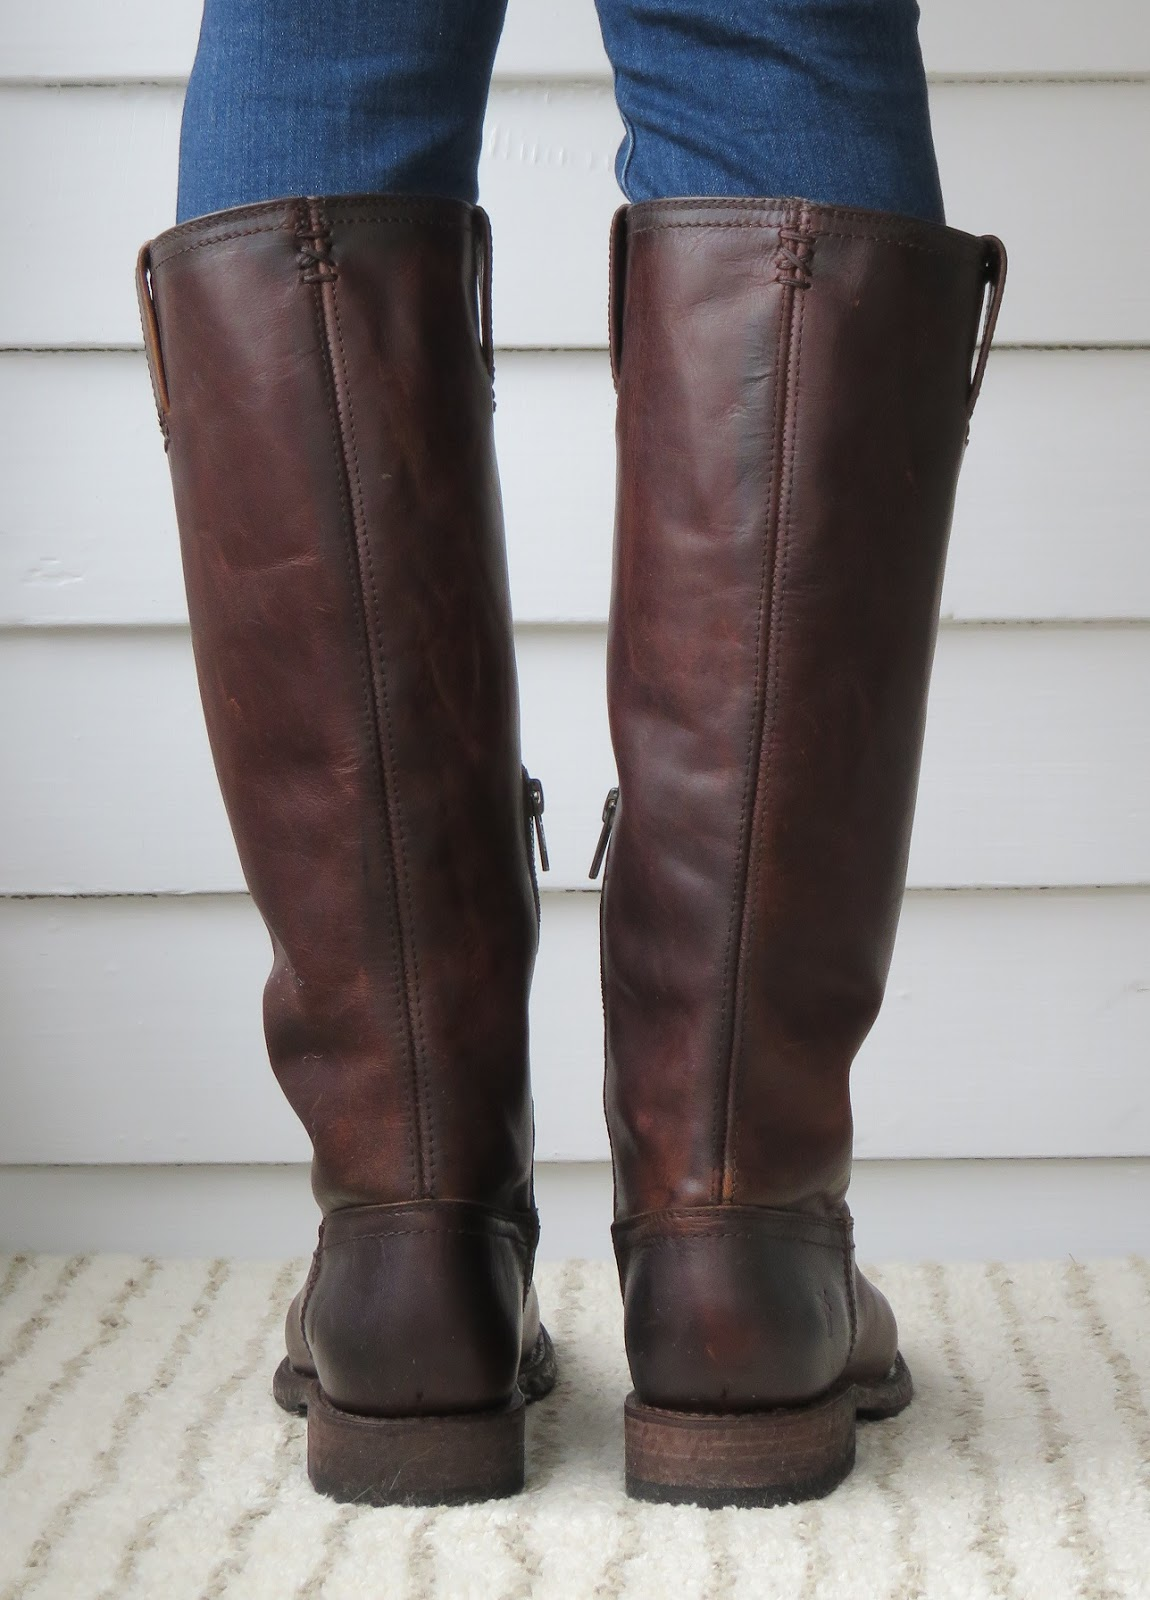 Howdy Slim! Riding Boots for Thin Calves: Frye Jenna Inside Zip